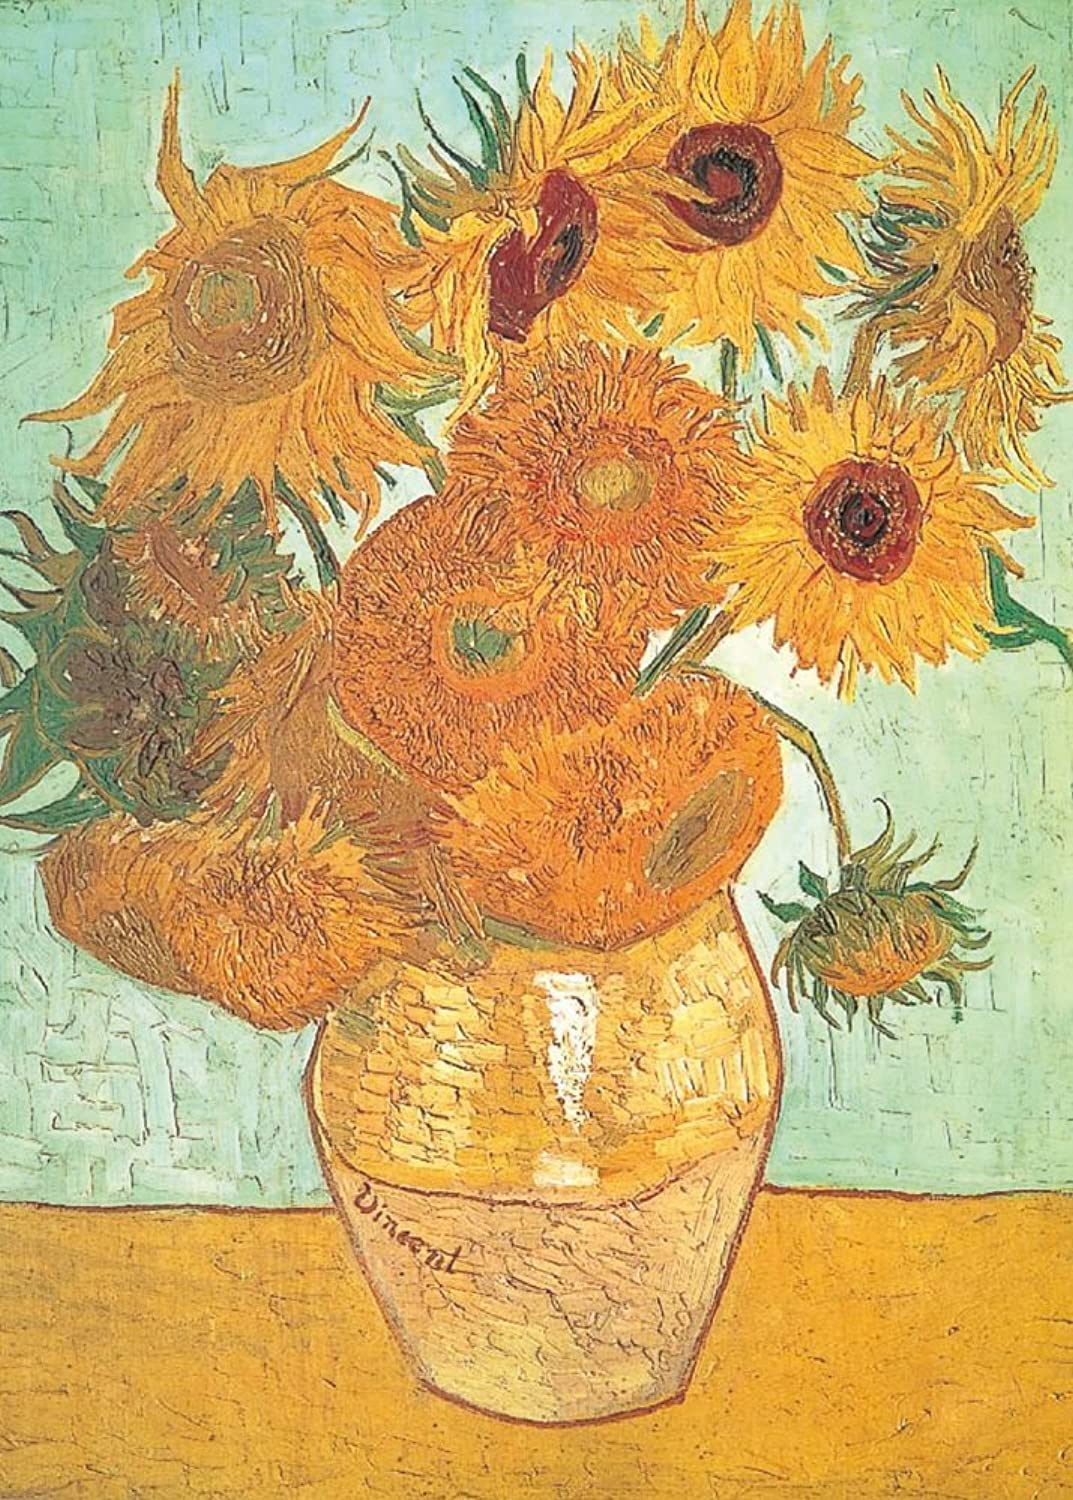 Sunflower 10568 of 12 this master piece of 1000  Puzzle Aim (japan import)